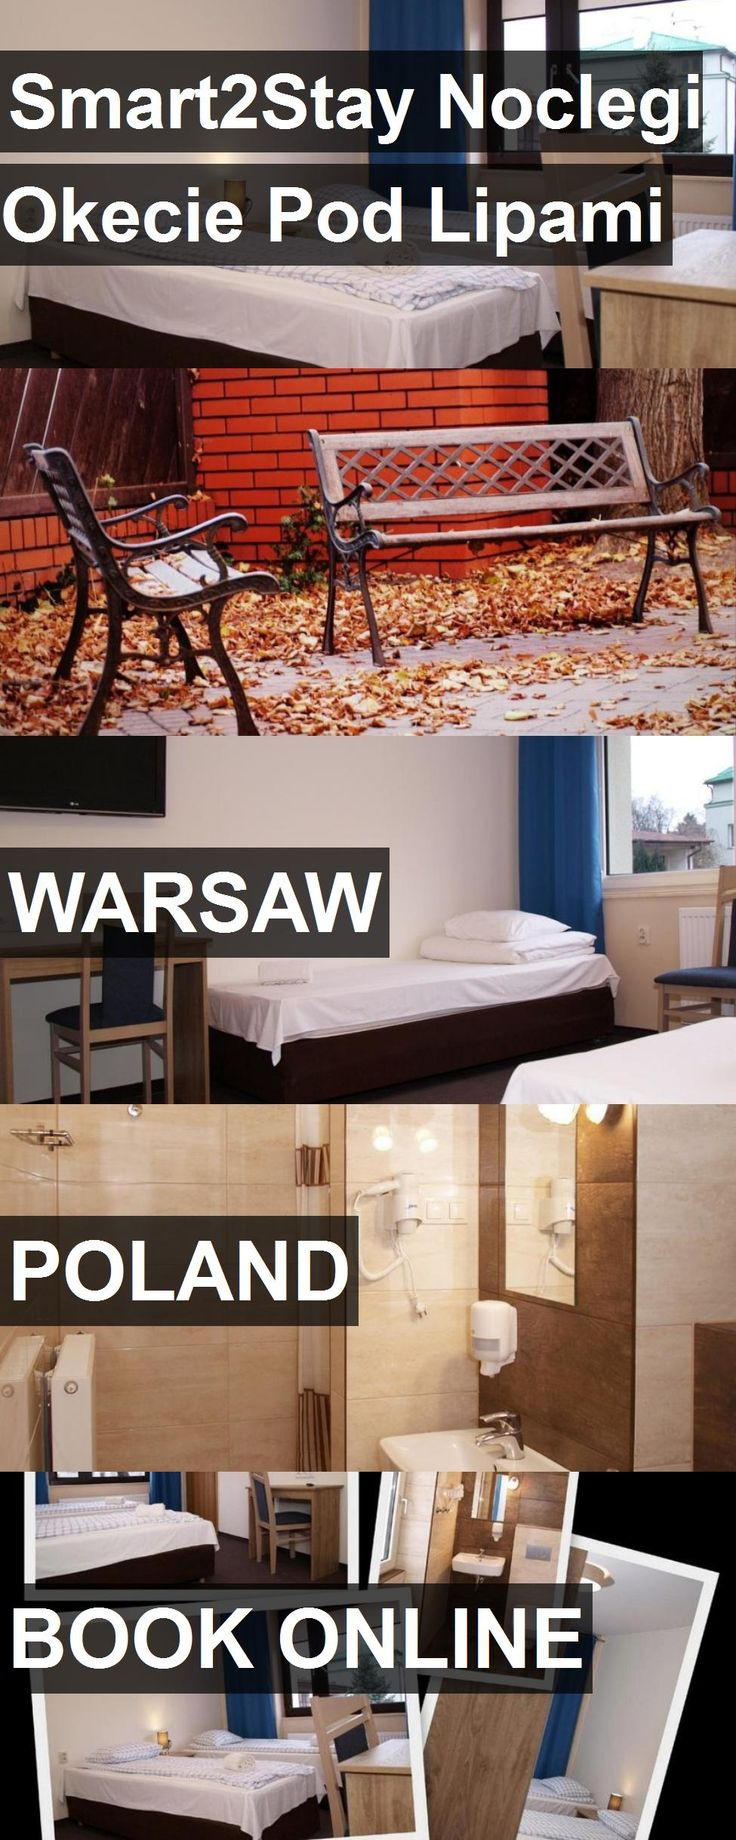 Hotel Smart2Stay Noclegi Okecie Pod Lipami in Warsaw, Poland. For more information, photos, reviews and best prices please follow the link. #Poland #Warsaw #Smart2StayNoclegiOkeciePodLipami #hotel #travel #vacation